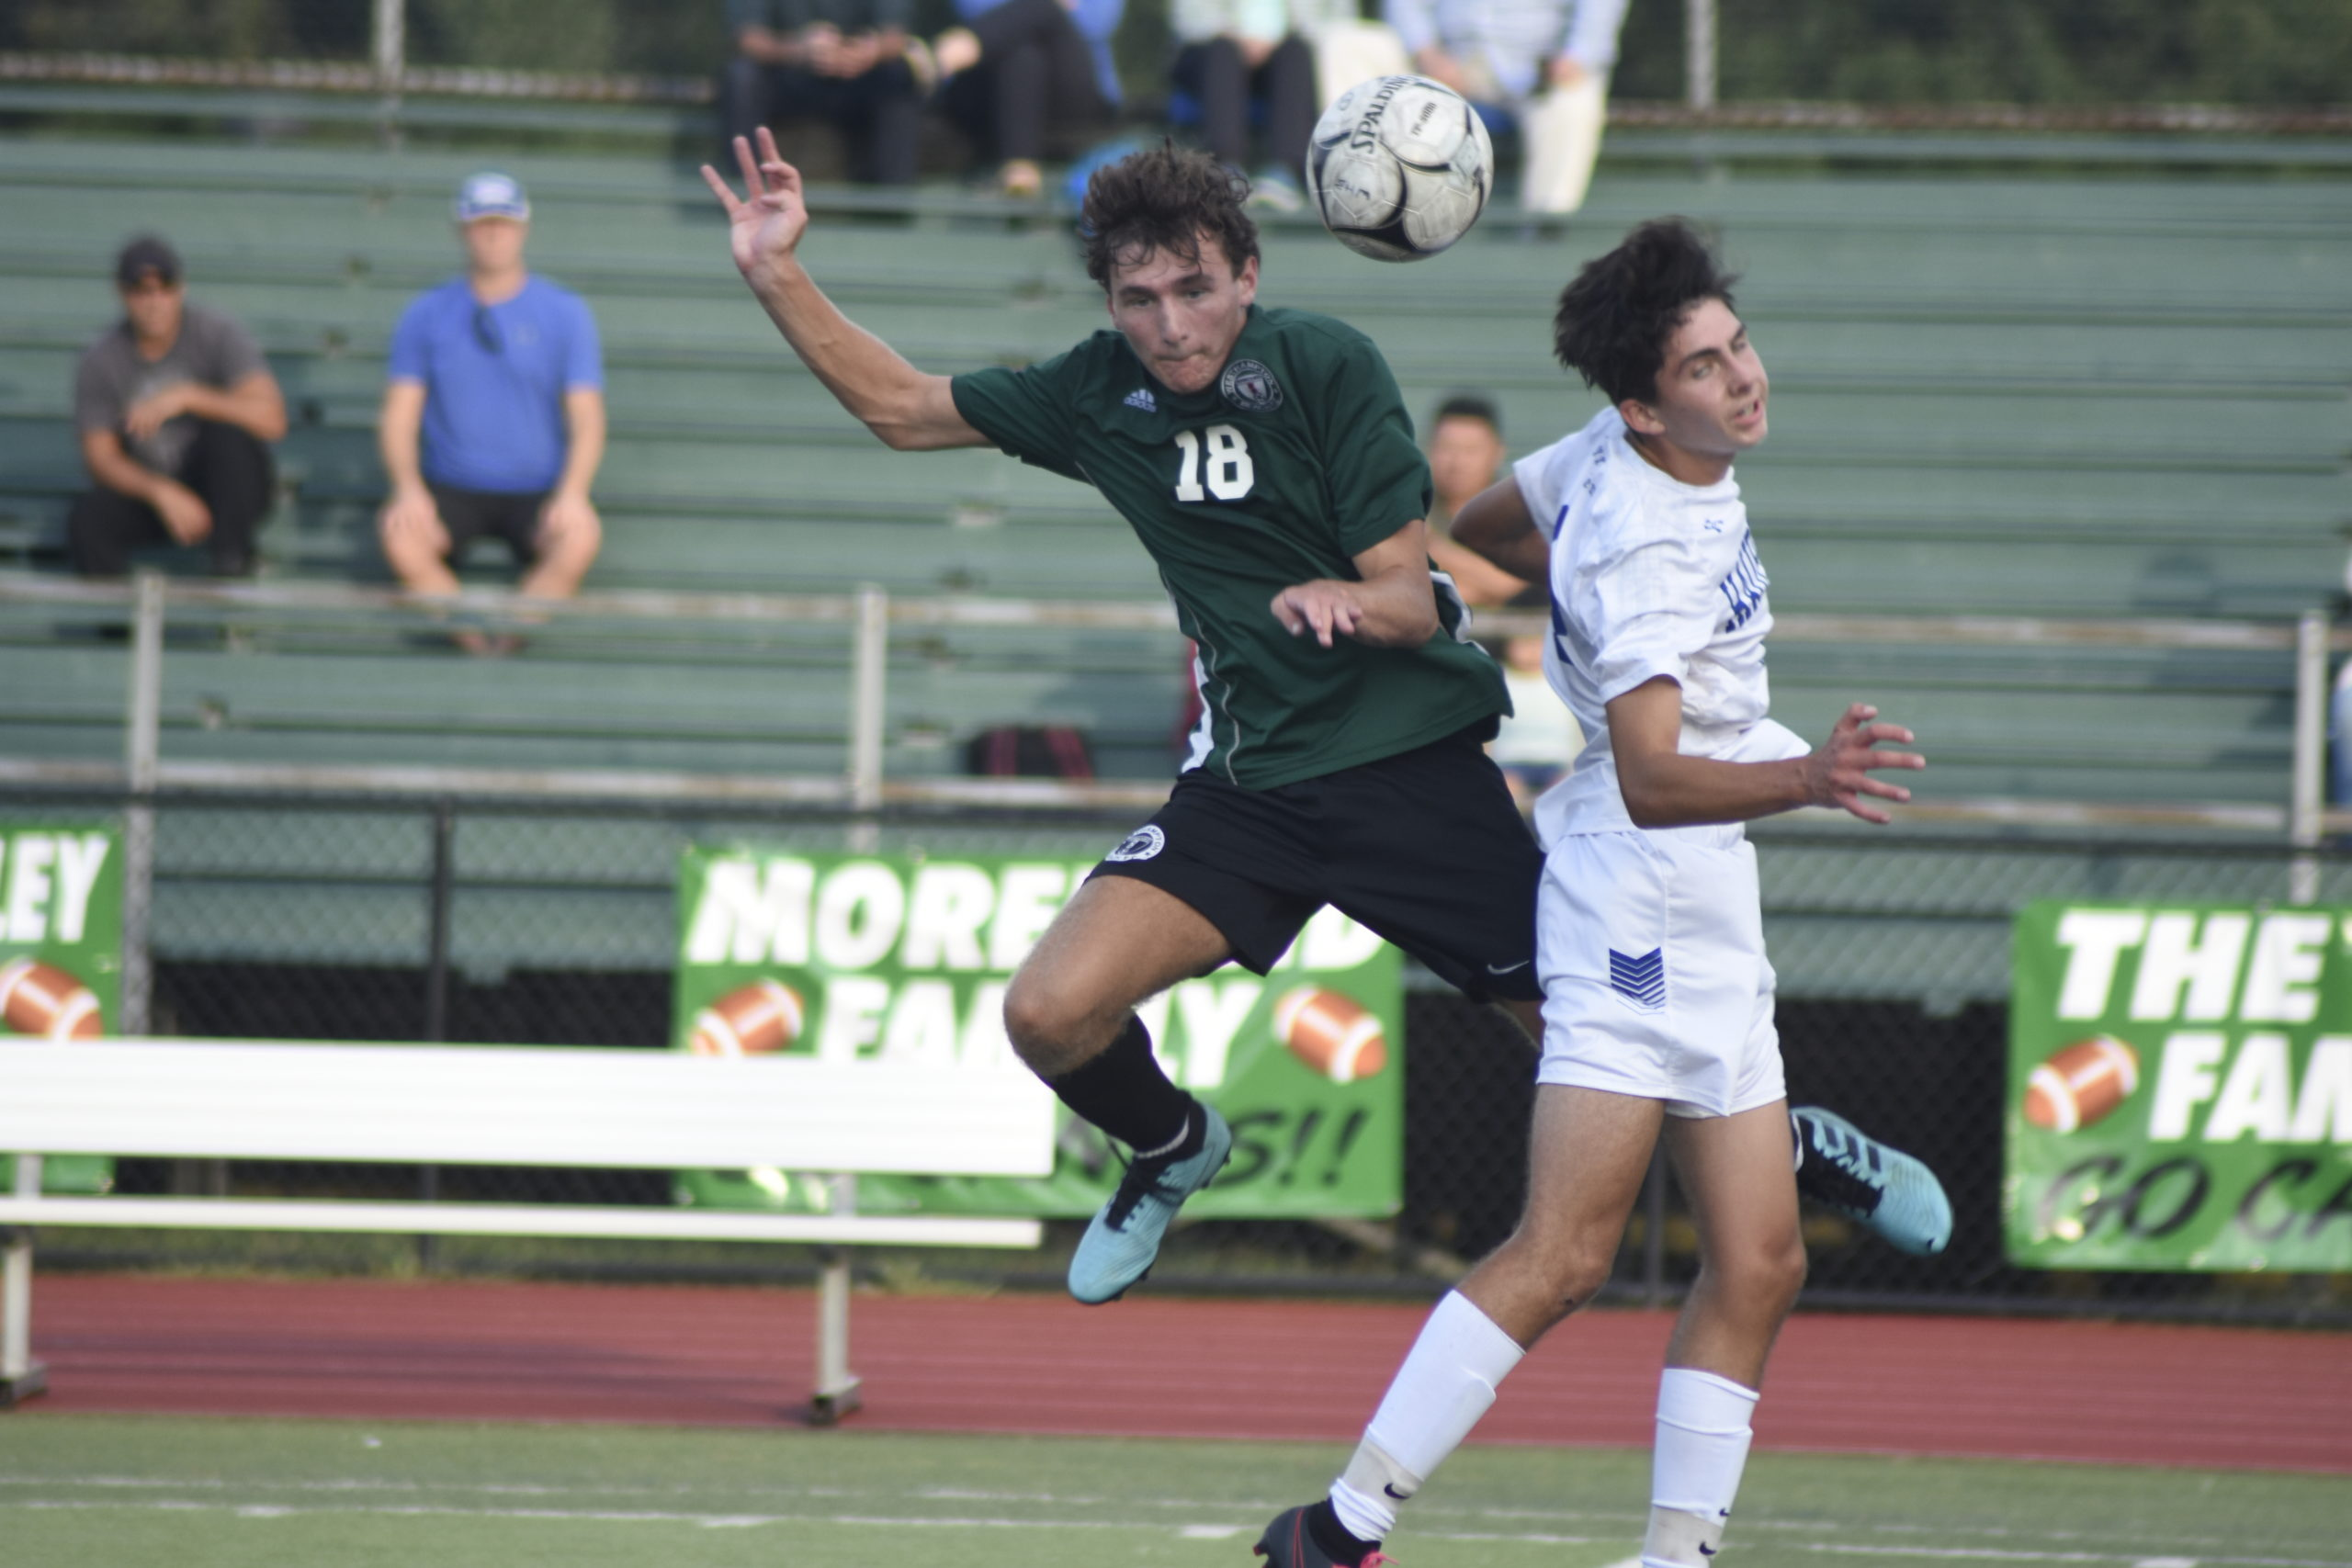 Westhampton Beach senior Michael Griffin and a Hauppauge player collide mid-air going up for a free ball.